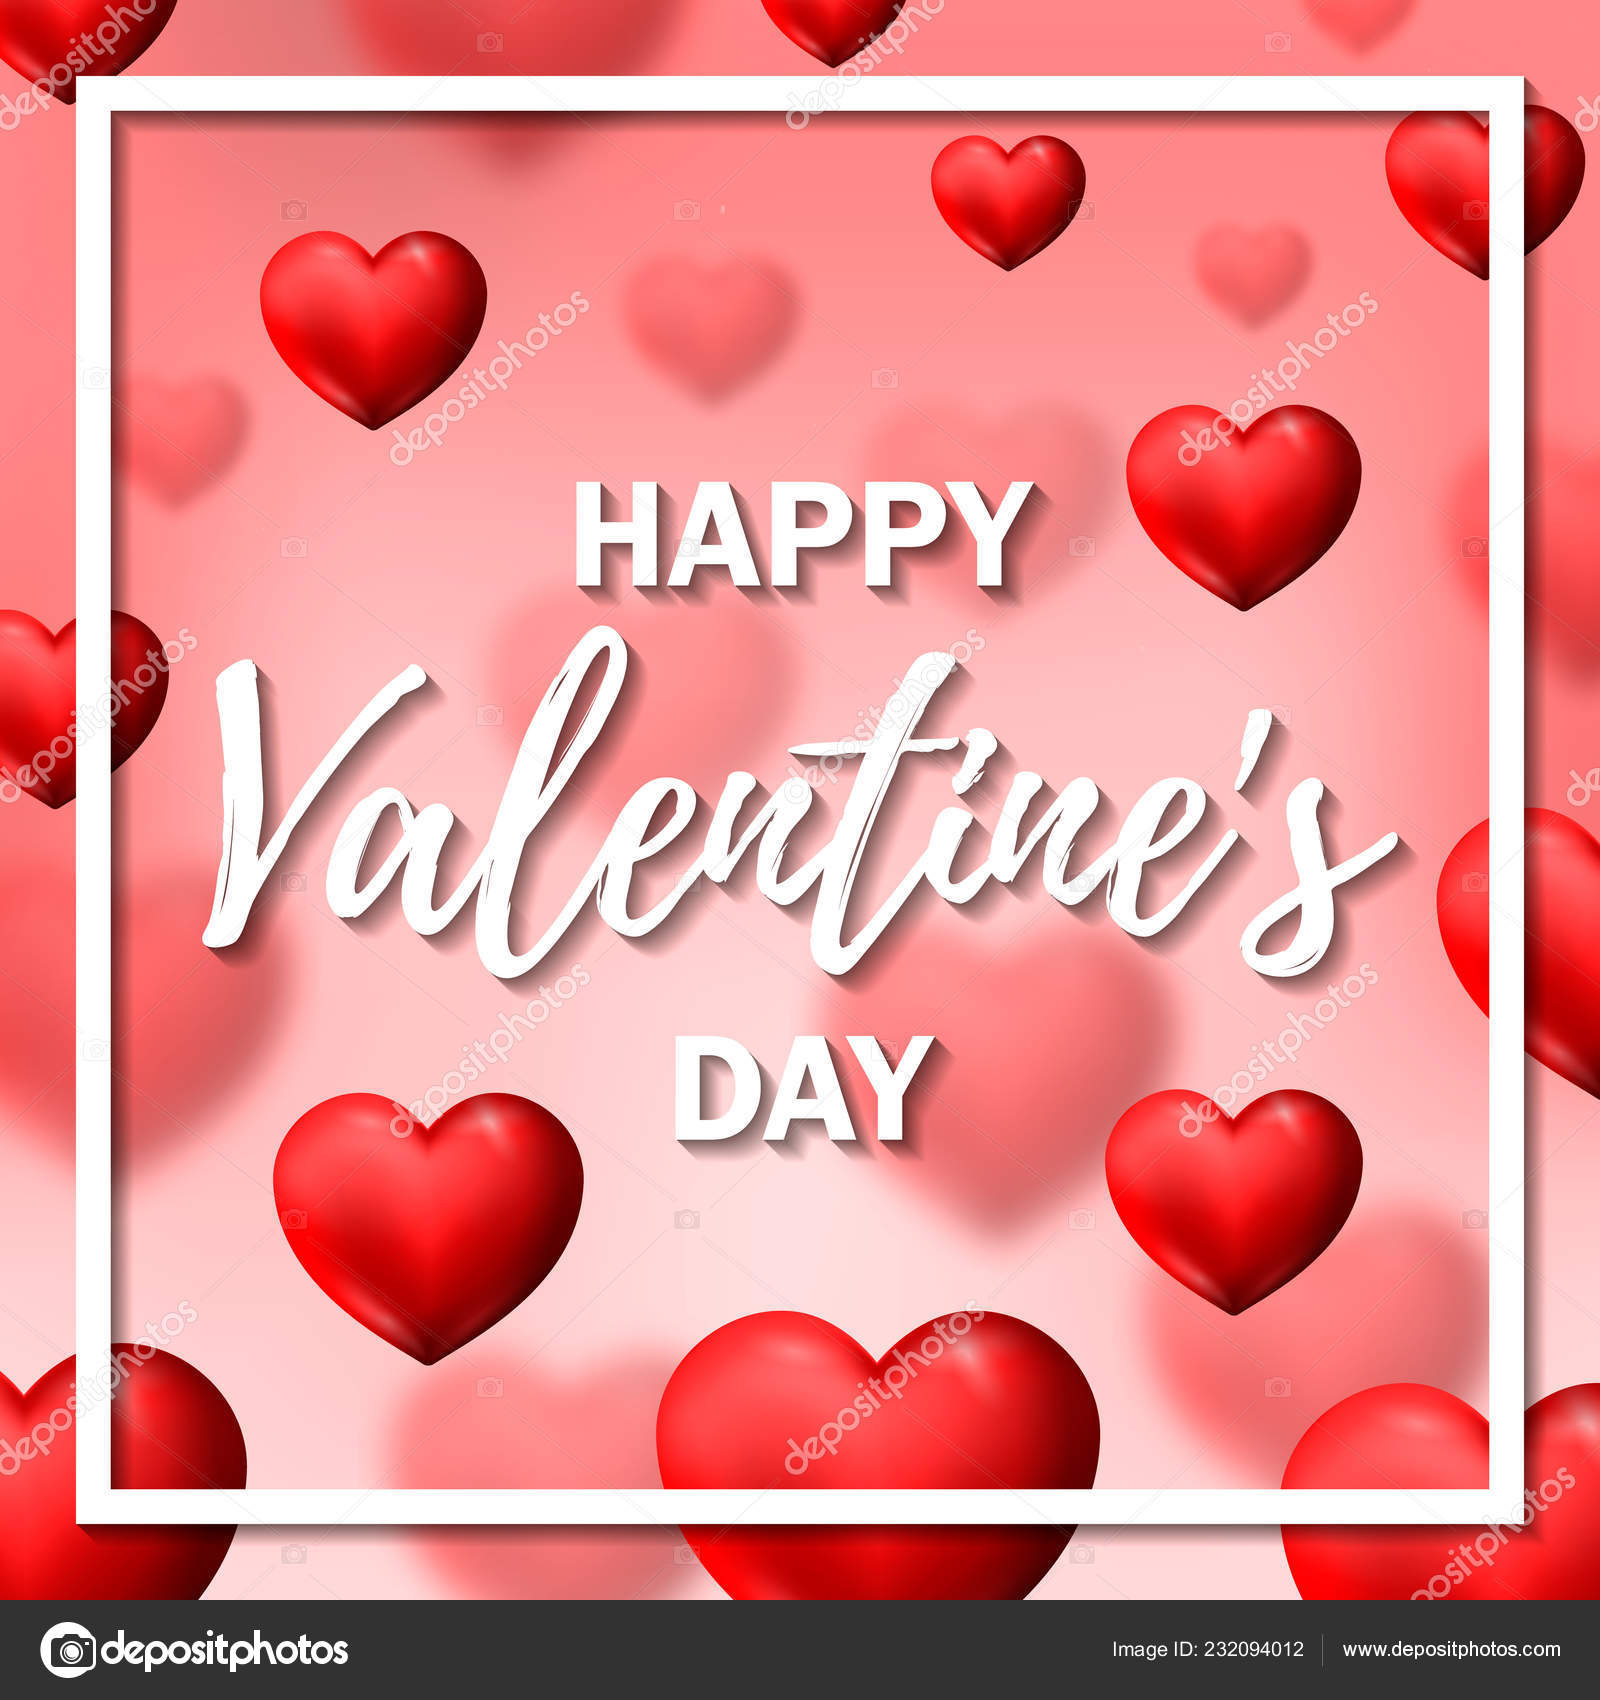 Valentines Day Greeting Card Red Hearts Pink Background Vector